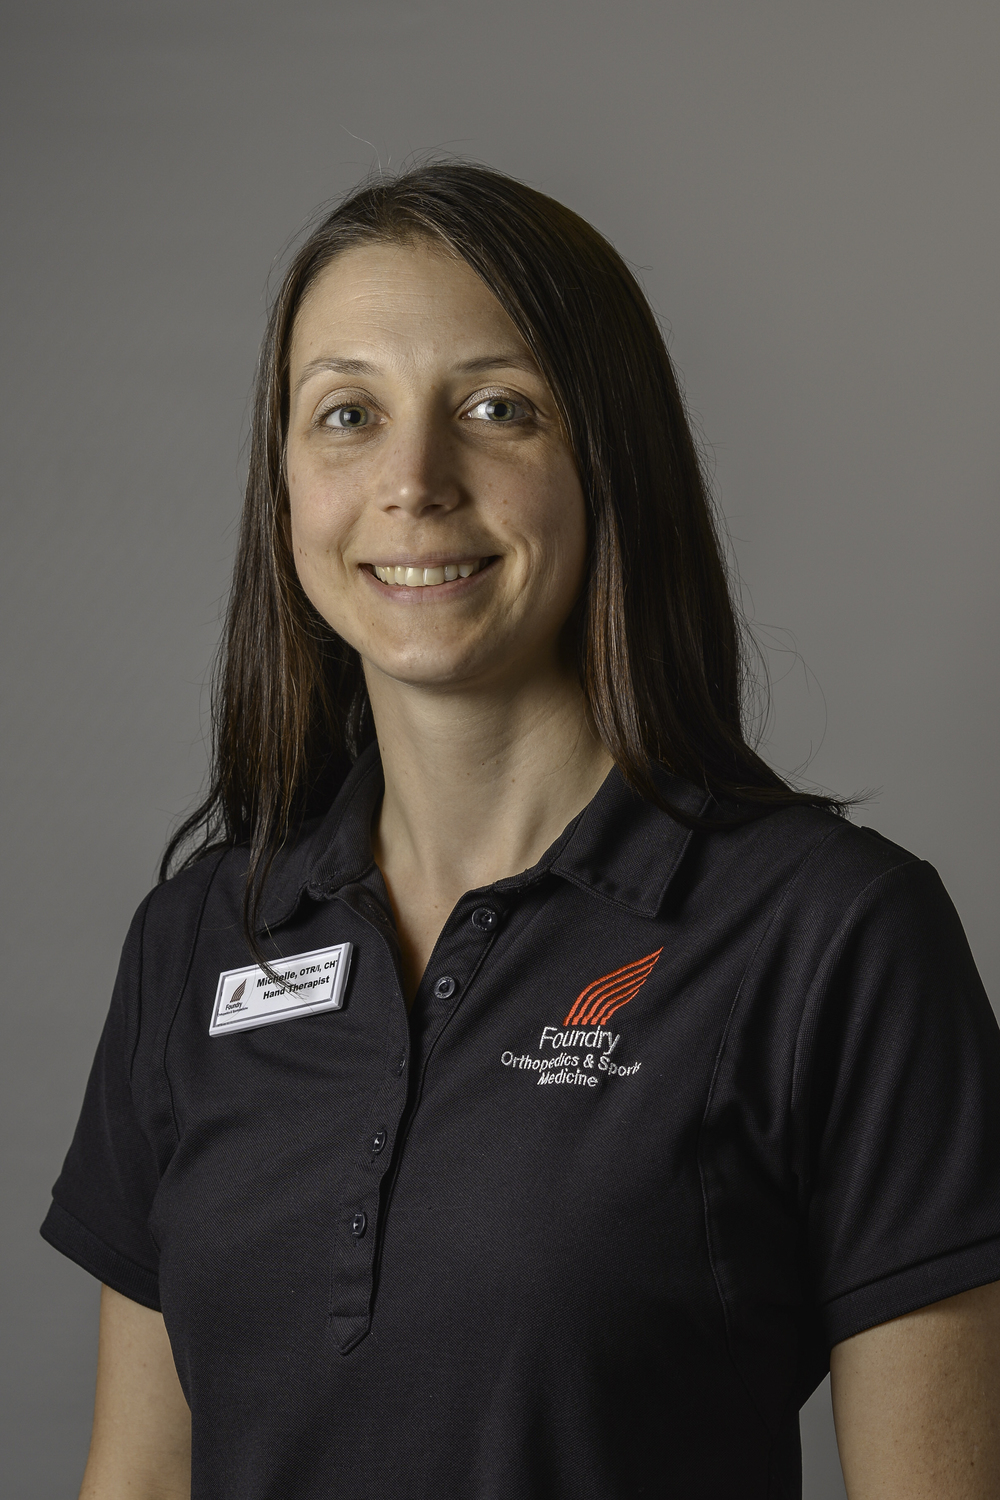 Michelle Choquette Foundry Orthopedics and Sports Medicine